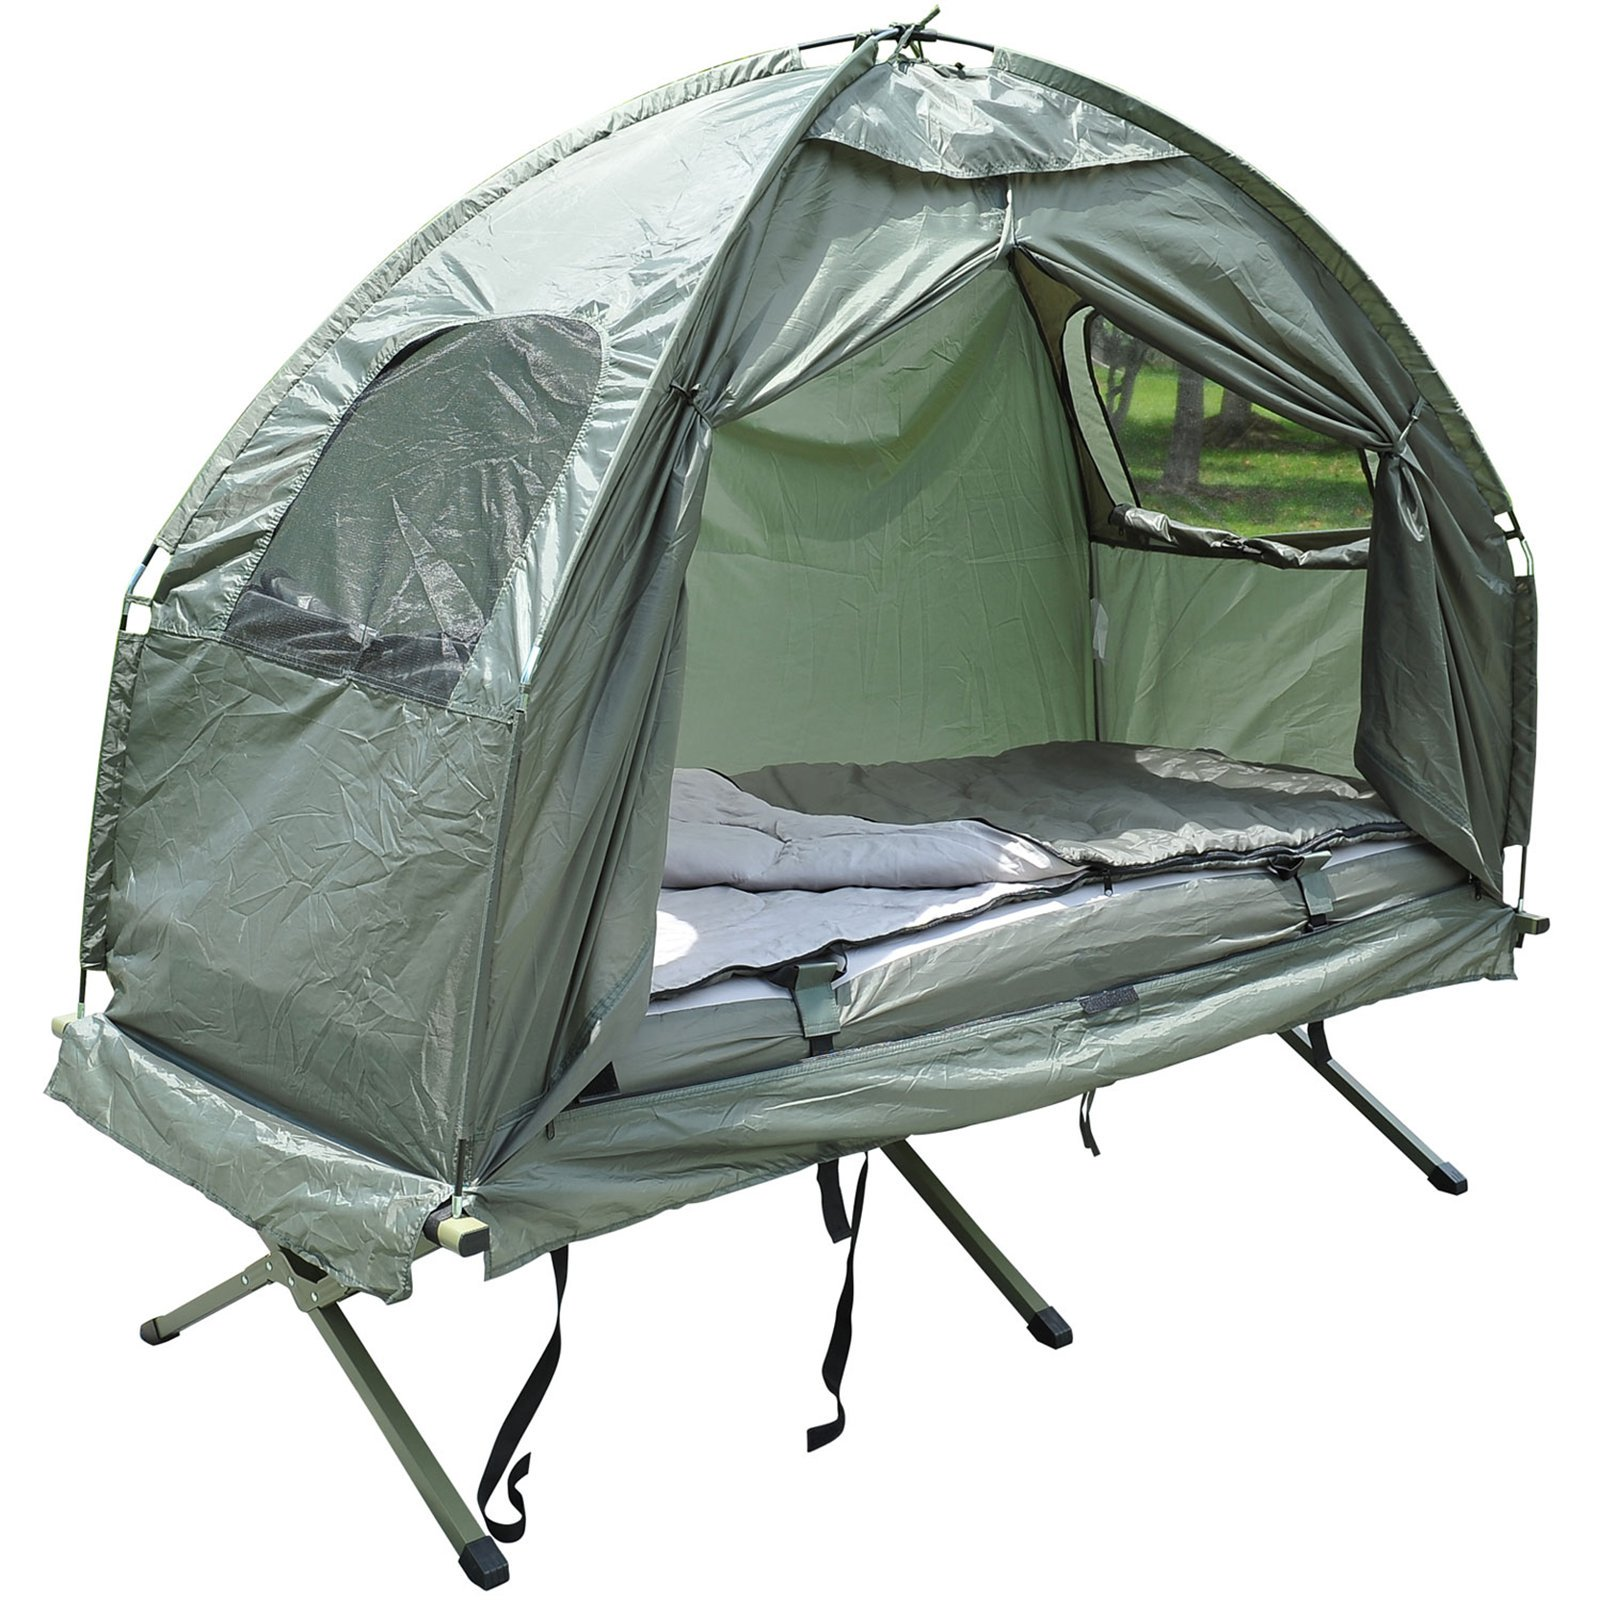 Outsunny Air Mattress Sleeping Bag Combo Pop Up Tent Cot  sc 1 st  Walmart : tent with cot - memphite.com